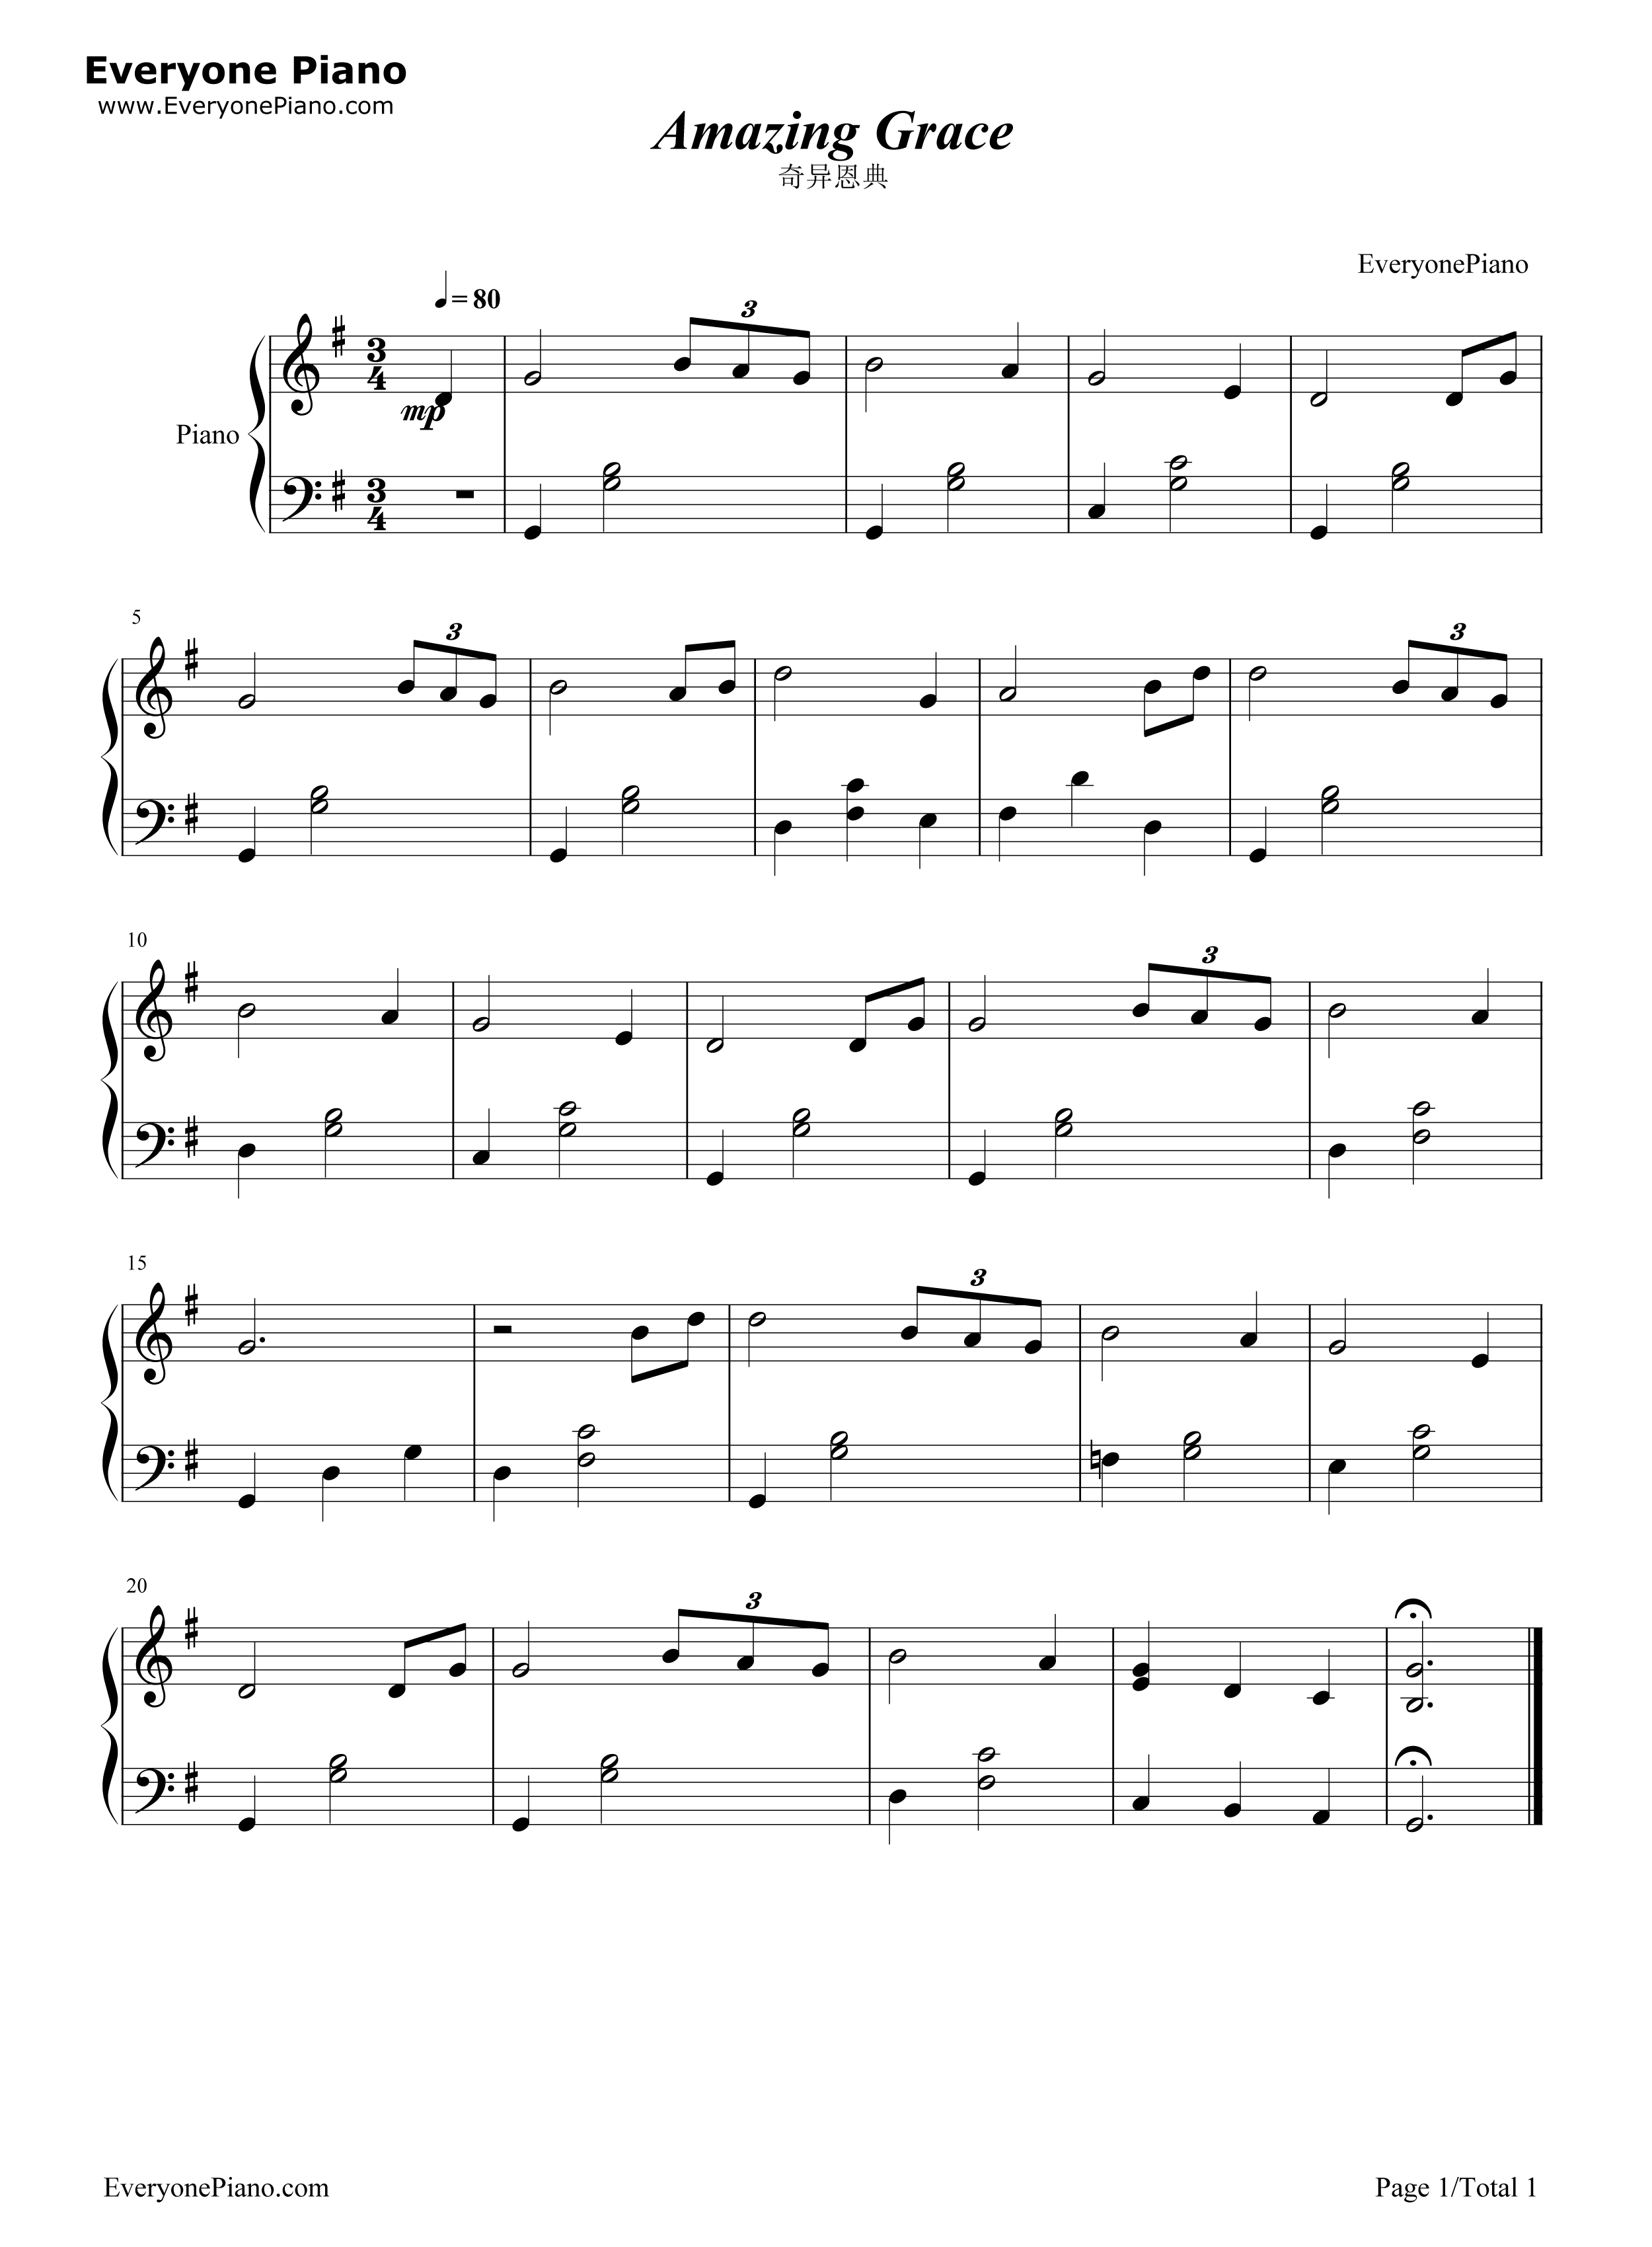 Amazing grace stave preview 1 free piano sheet music piano chords listen now print sheet amazing grace stave preview 1 hexwebz Image collections